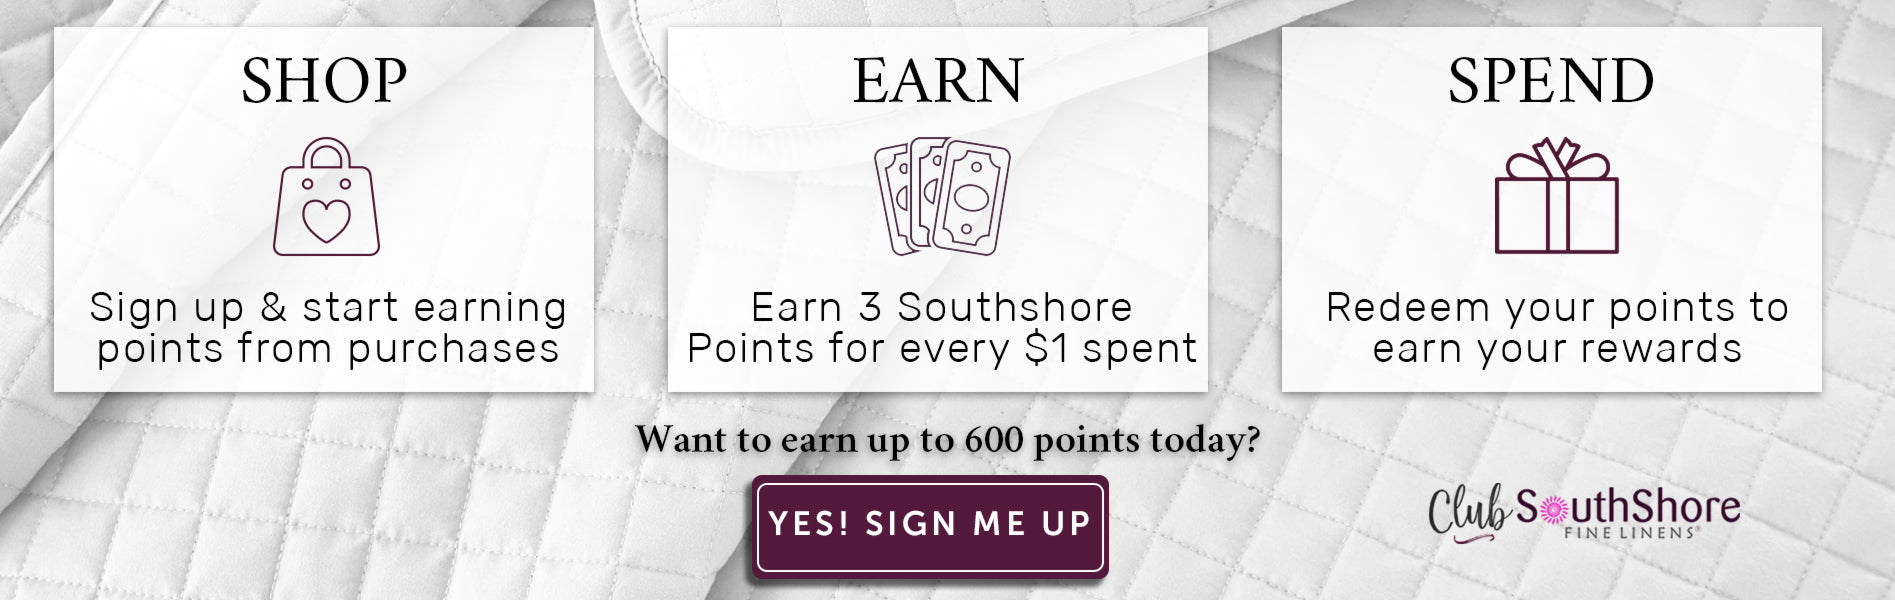 Sign up and start earning points from purchases with our rewards program. You'll earn 3 points for every 1 dollar spent. Sign up to start earning rewards and redeeming your points